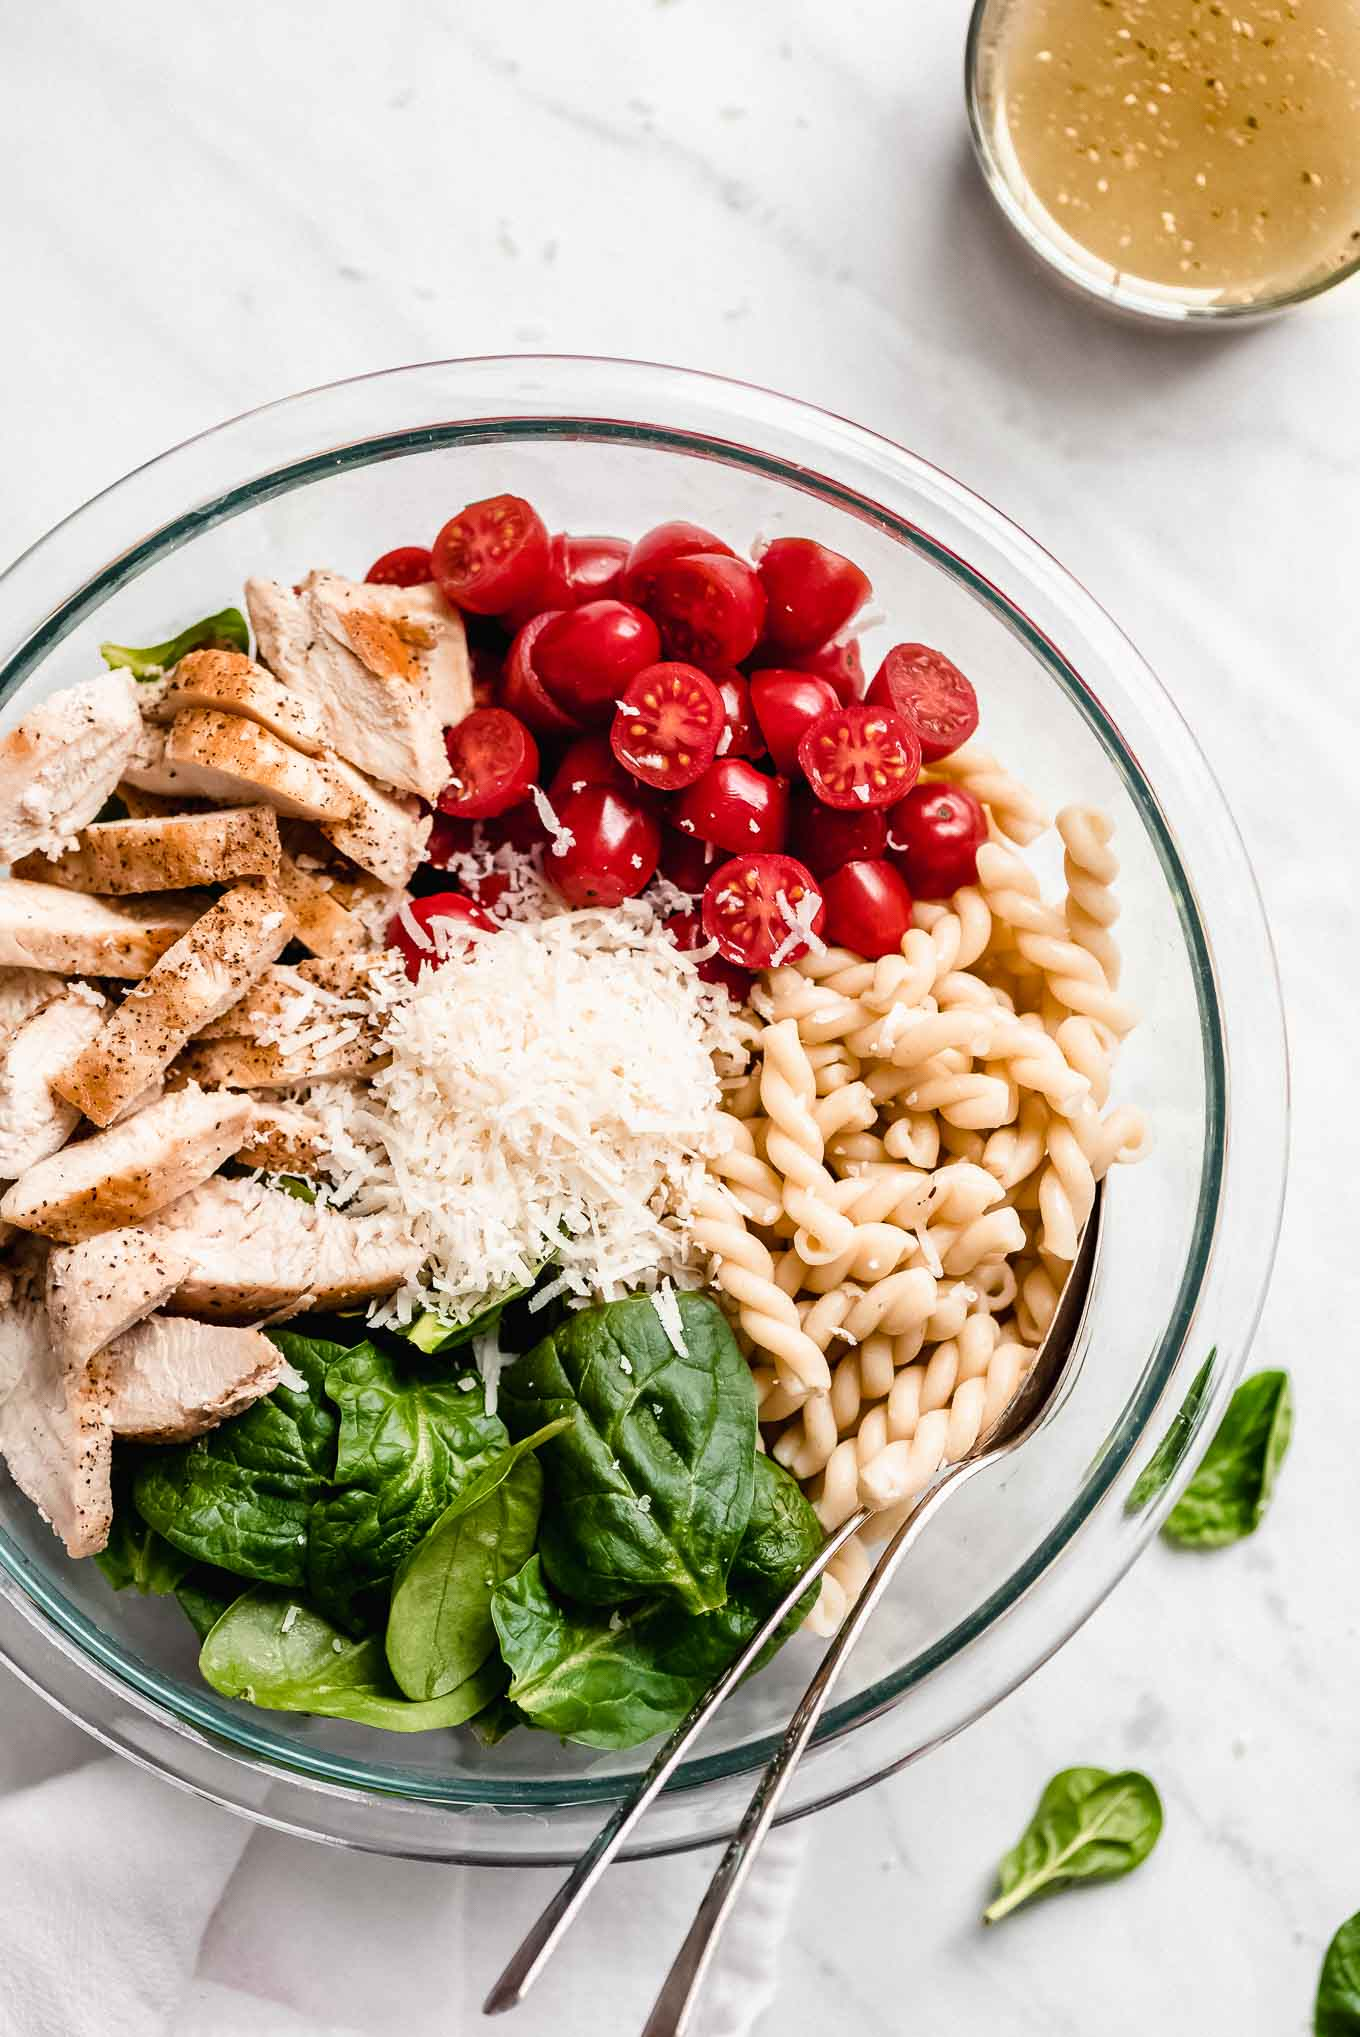 Chicken, tomatoes, noodles, spinach, and Parmesan cheese in a bowl ready to mix together to make Chicken Pasta Salad with Spinach & Tomatoes.